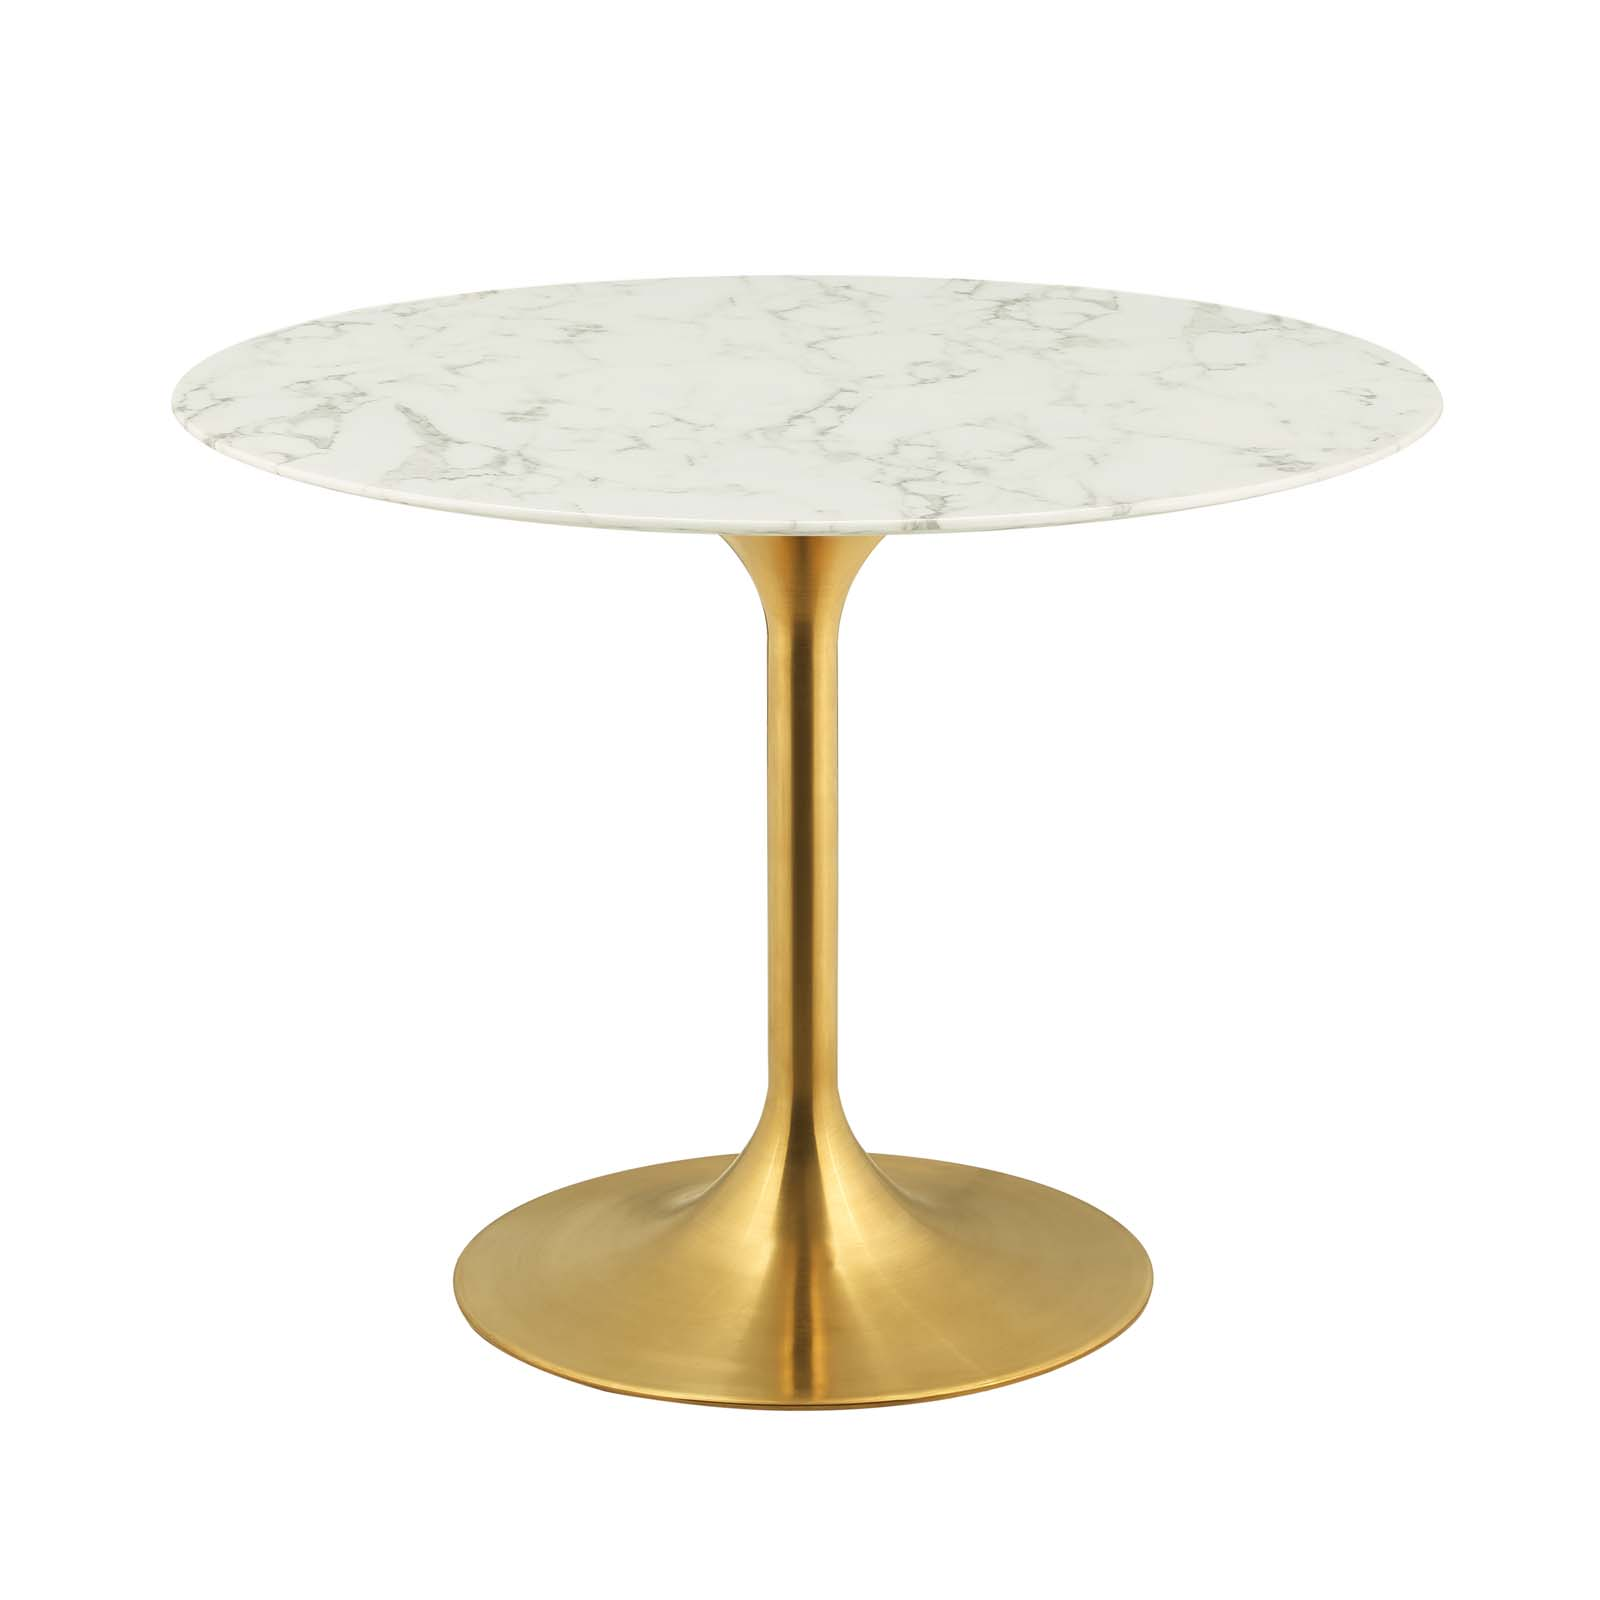 Lippa 40 Quot Round Artificial Marble Dining Table Gold White